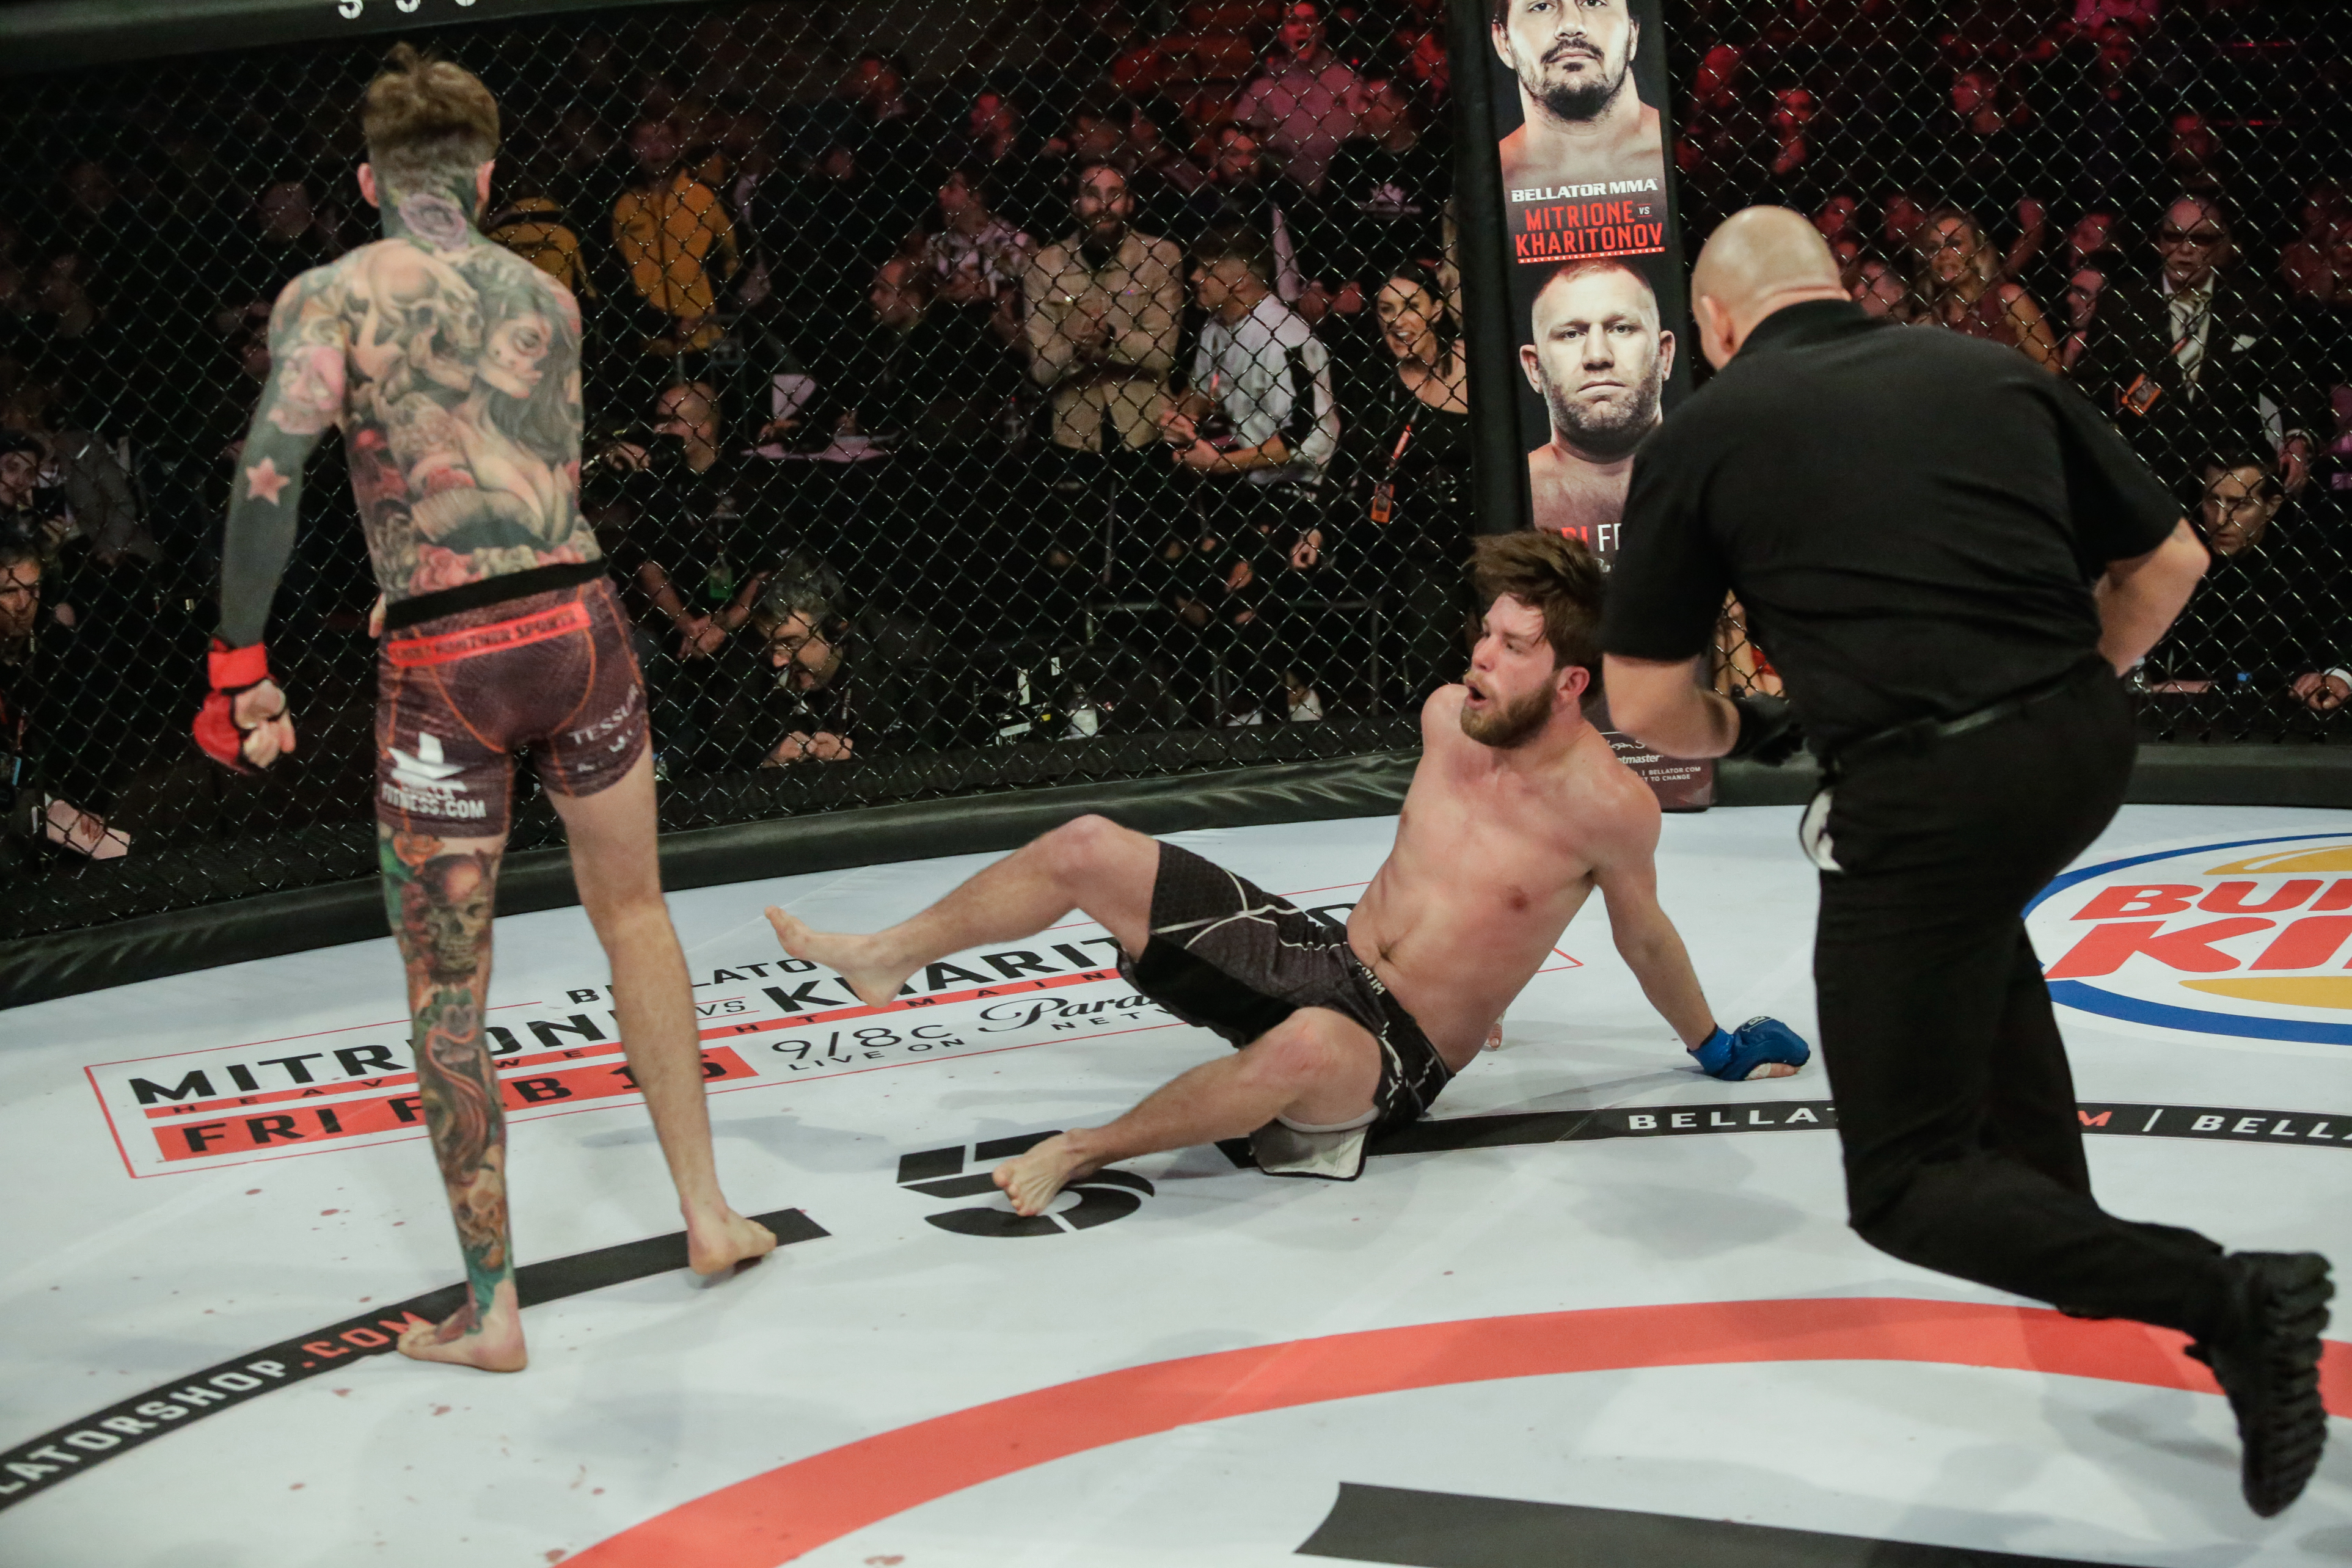 Aaron Chalmers suffers first MMA defeat at Bellator Newcatle